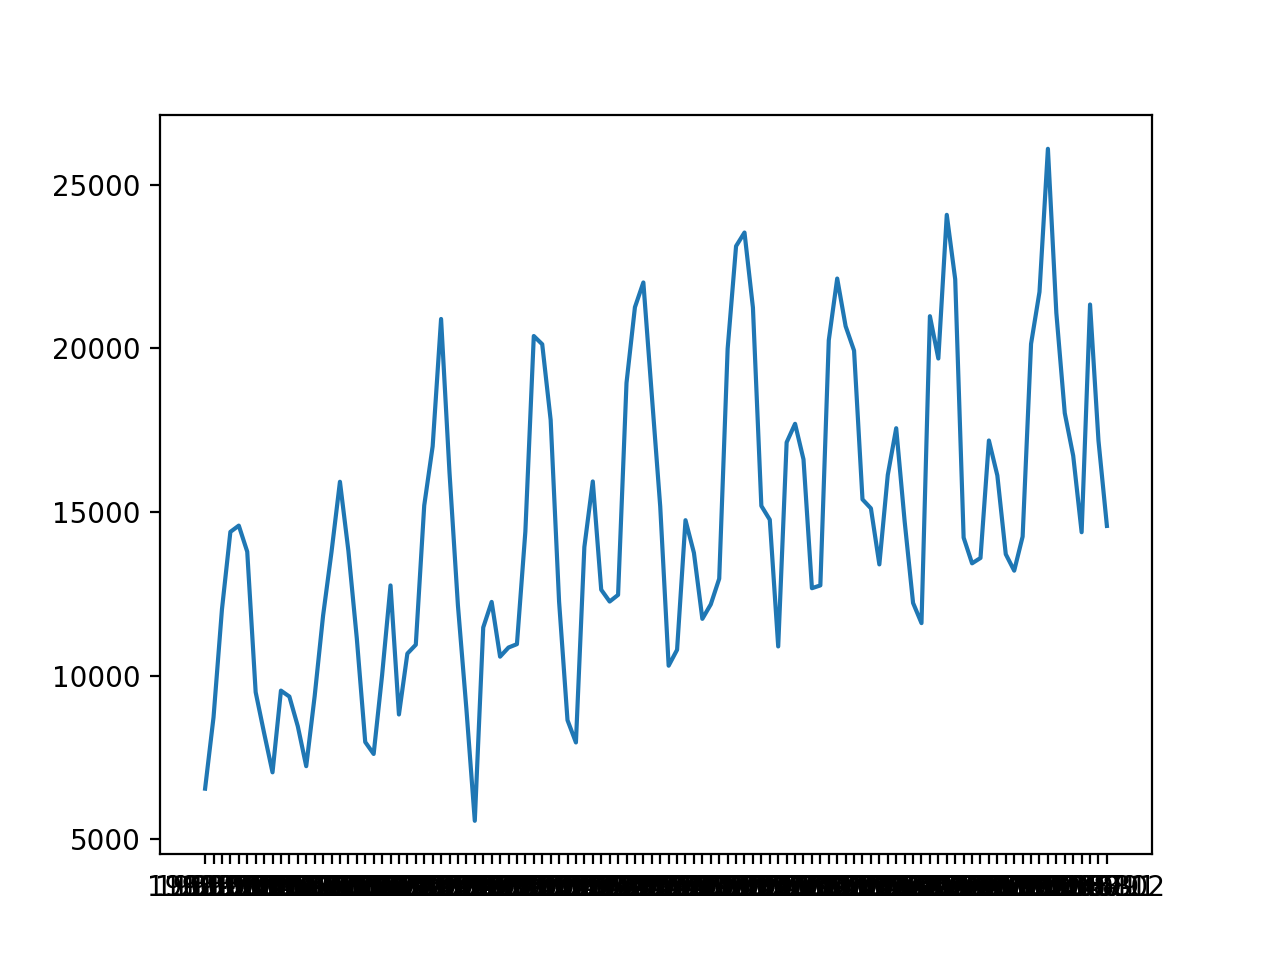 How To Develop Deep Learning Models For Univariate Time Series Forecasting